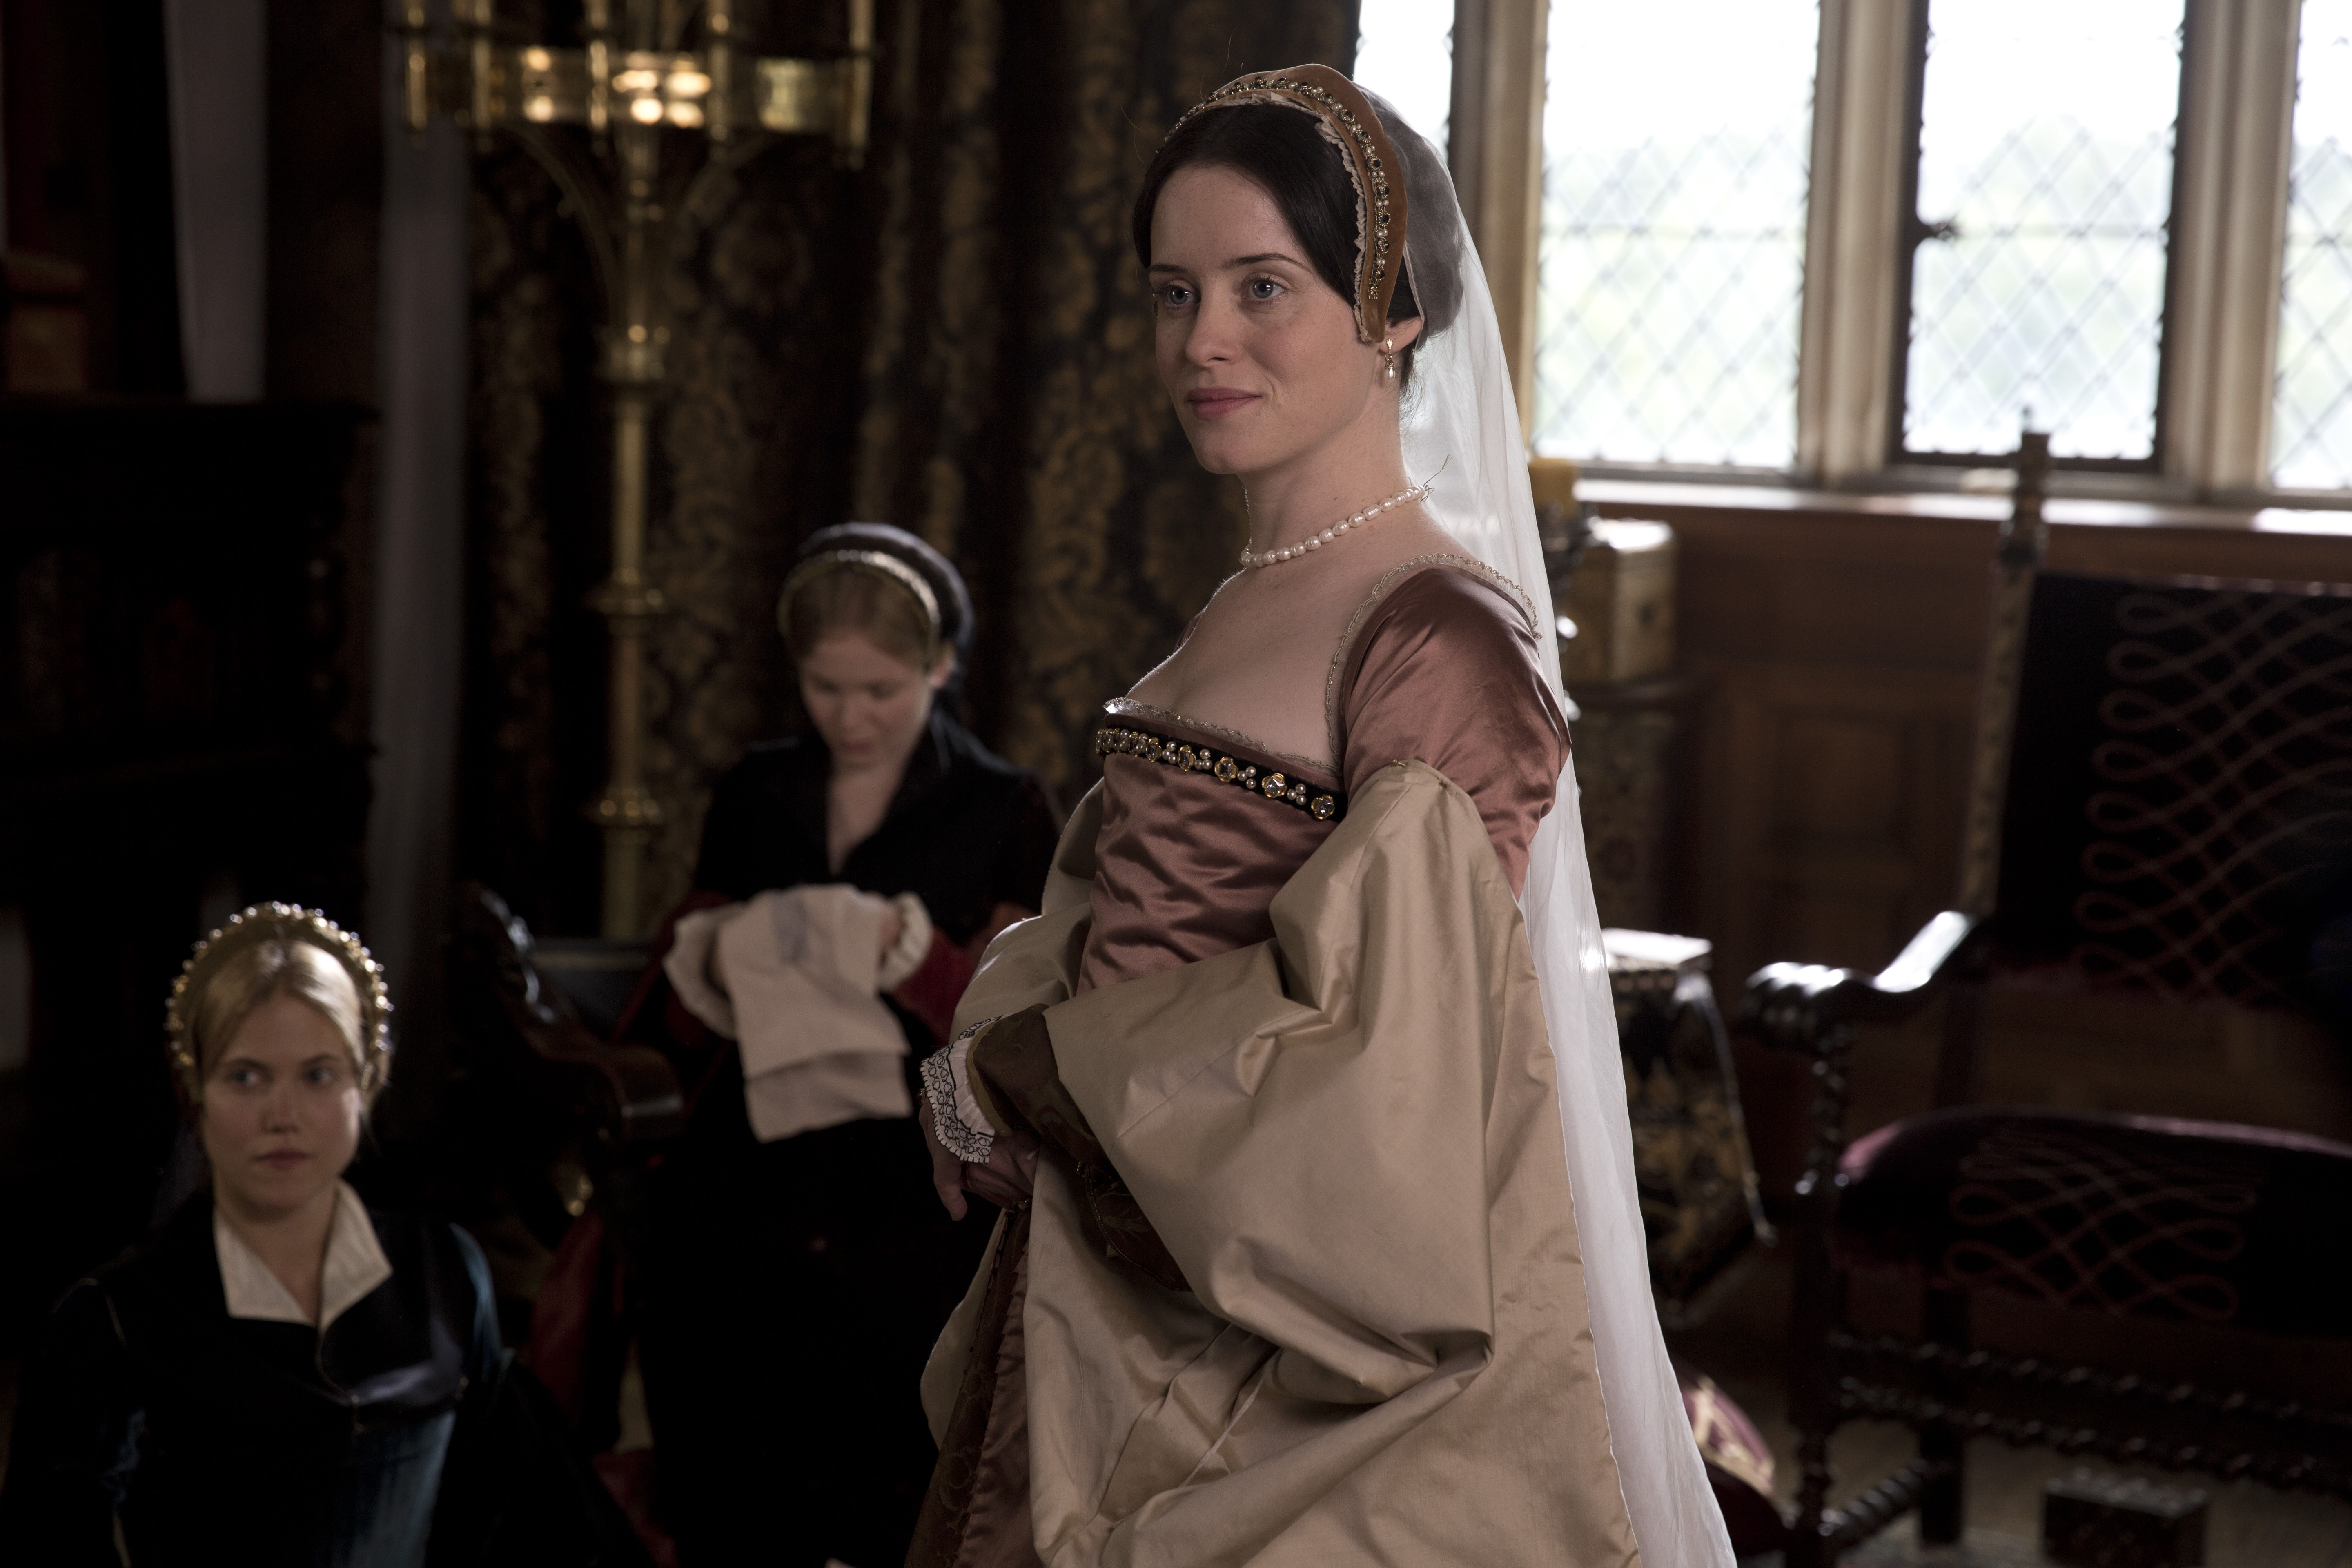 Foy as Anne Boleyn in Wolf Hall